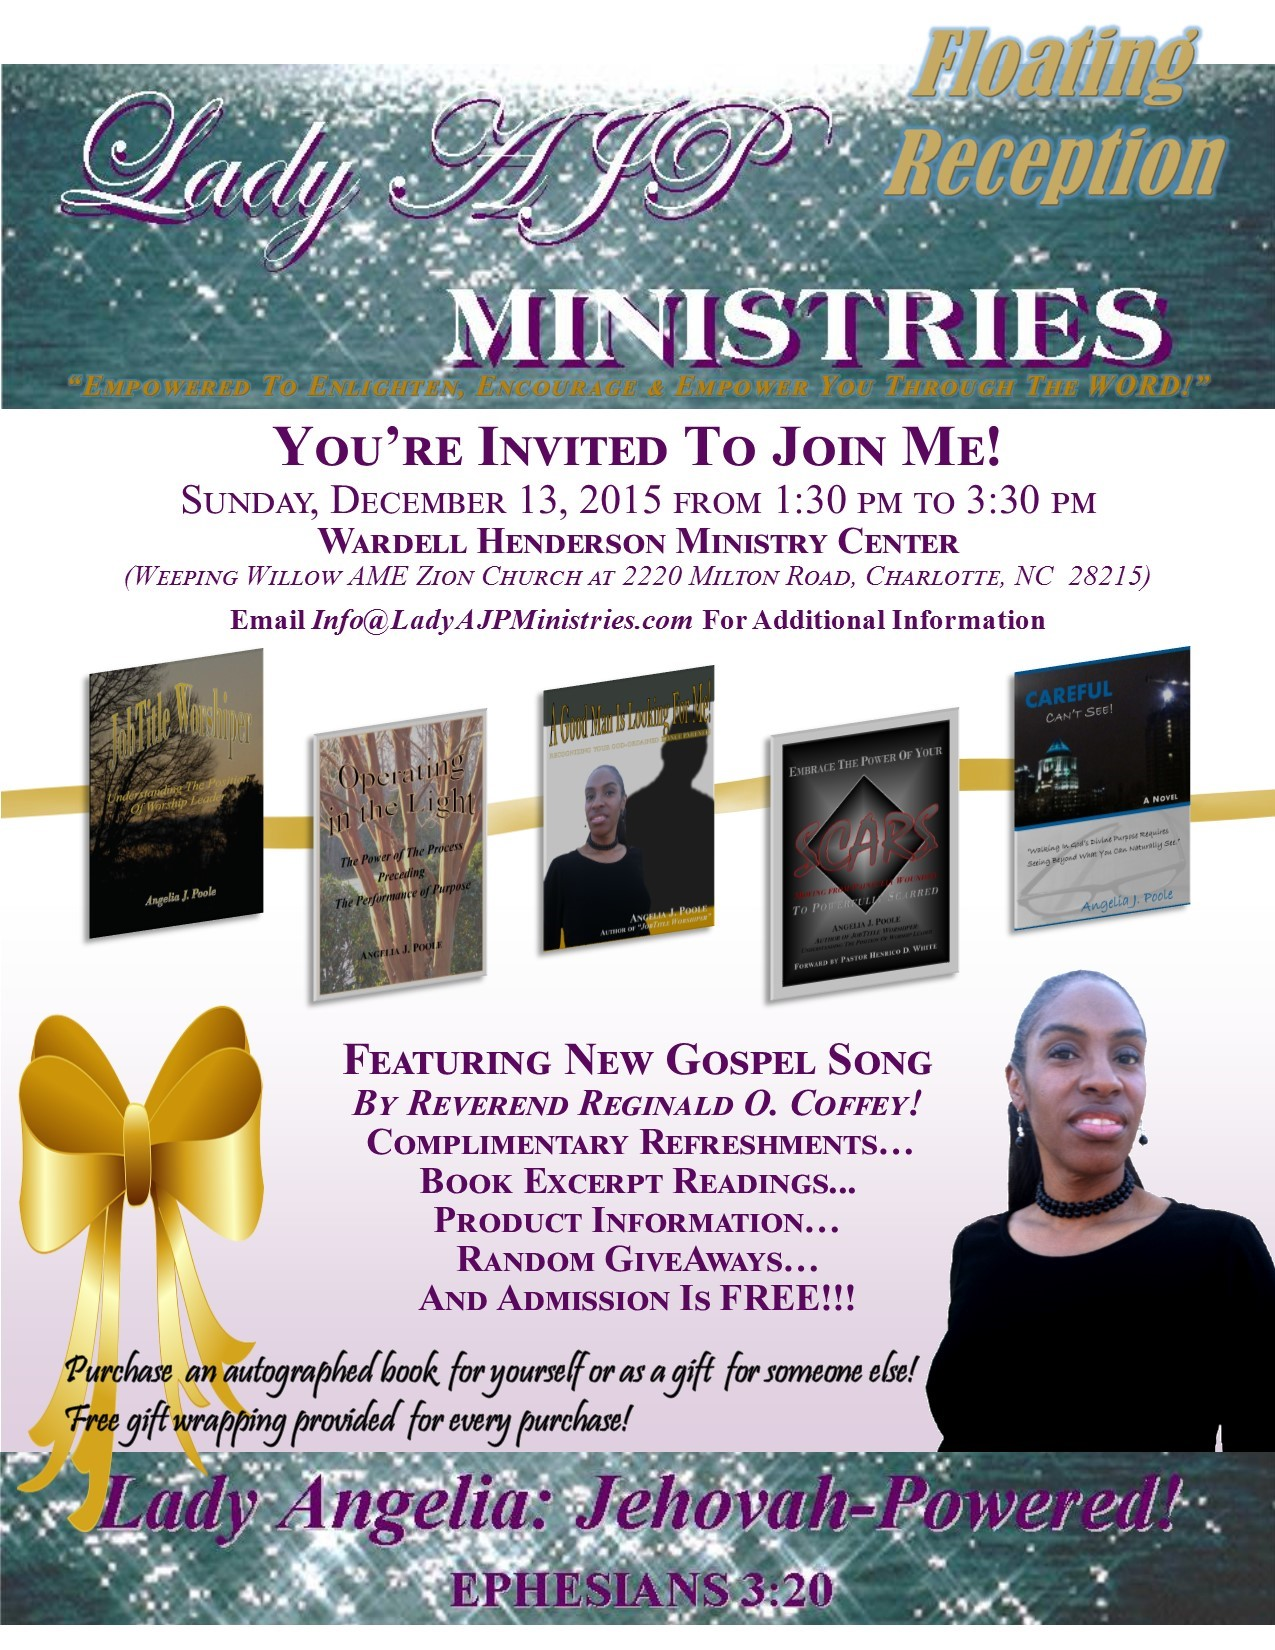 Lady AJP Ministries Reception Flyer